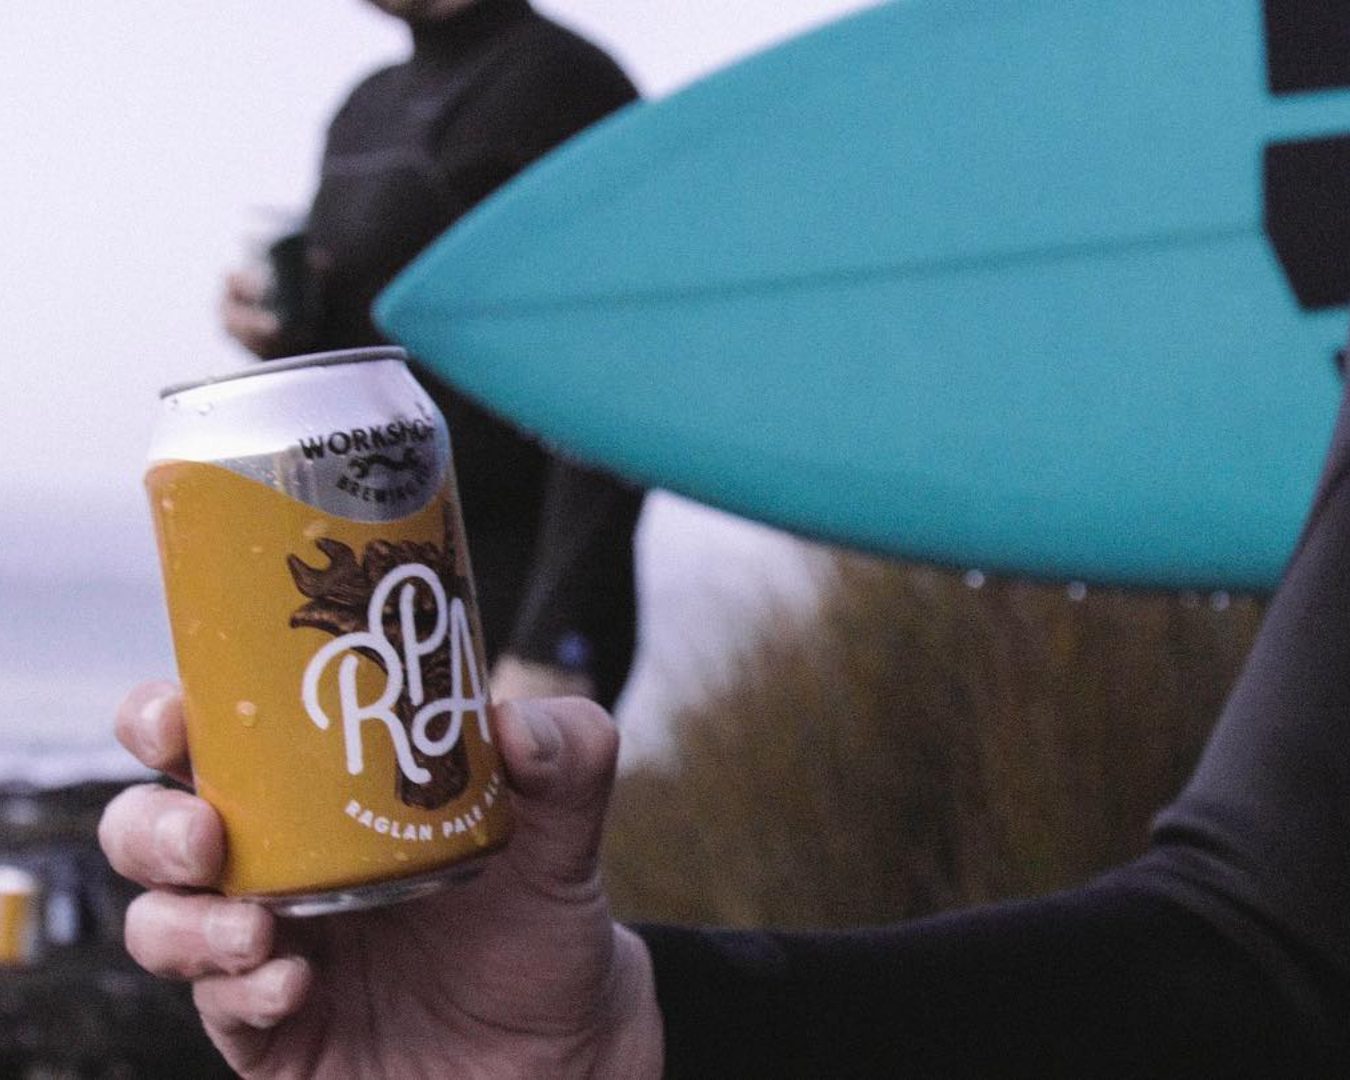 A surfer holding a can of Raglan Pale Ale